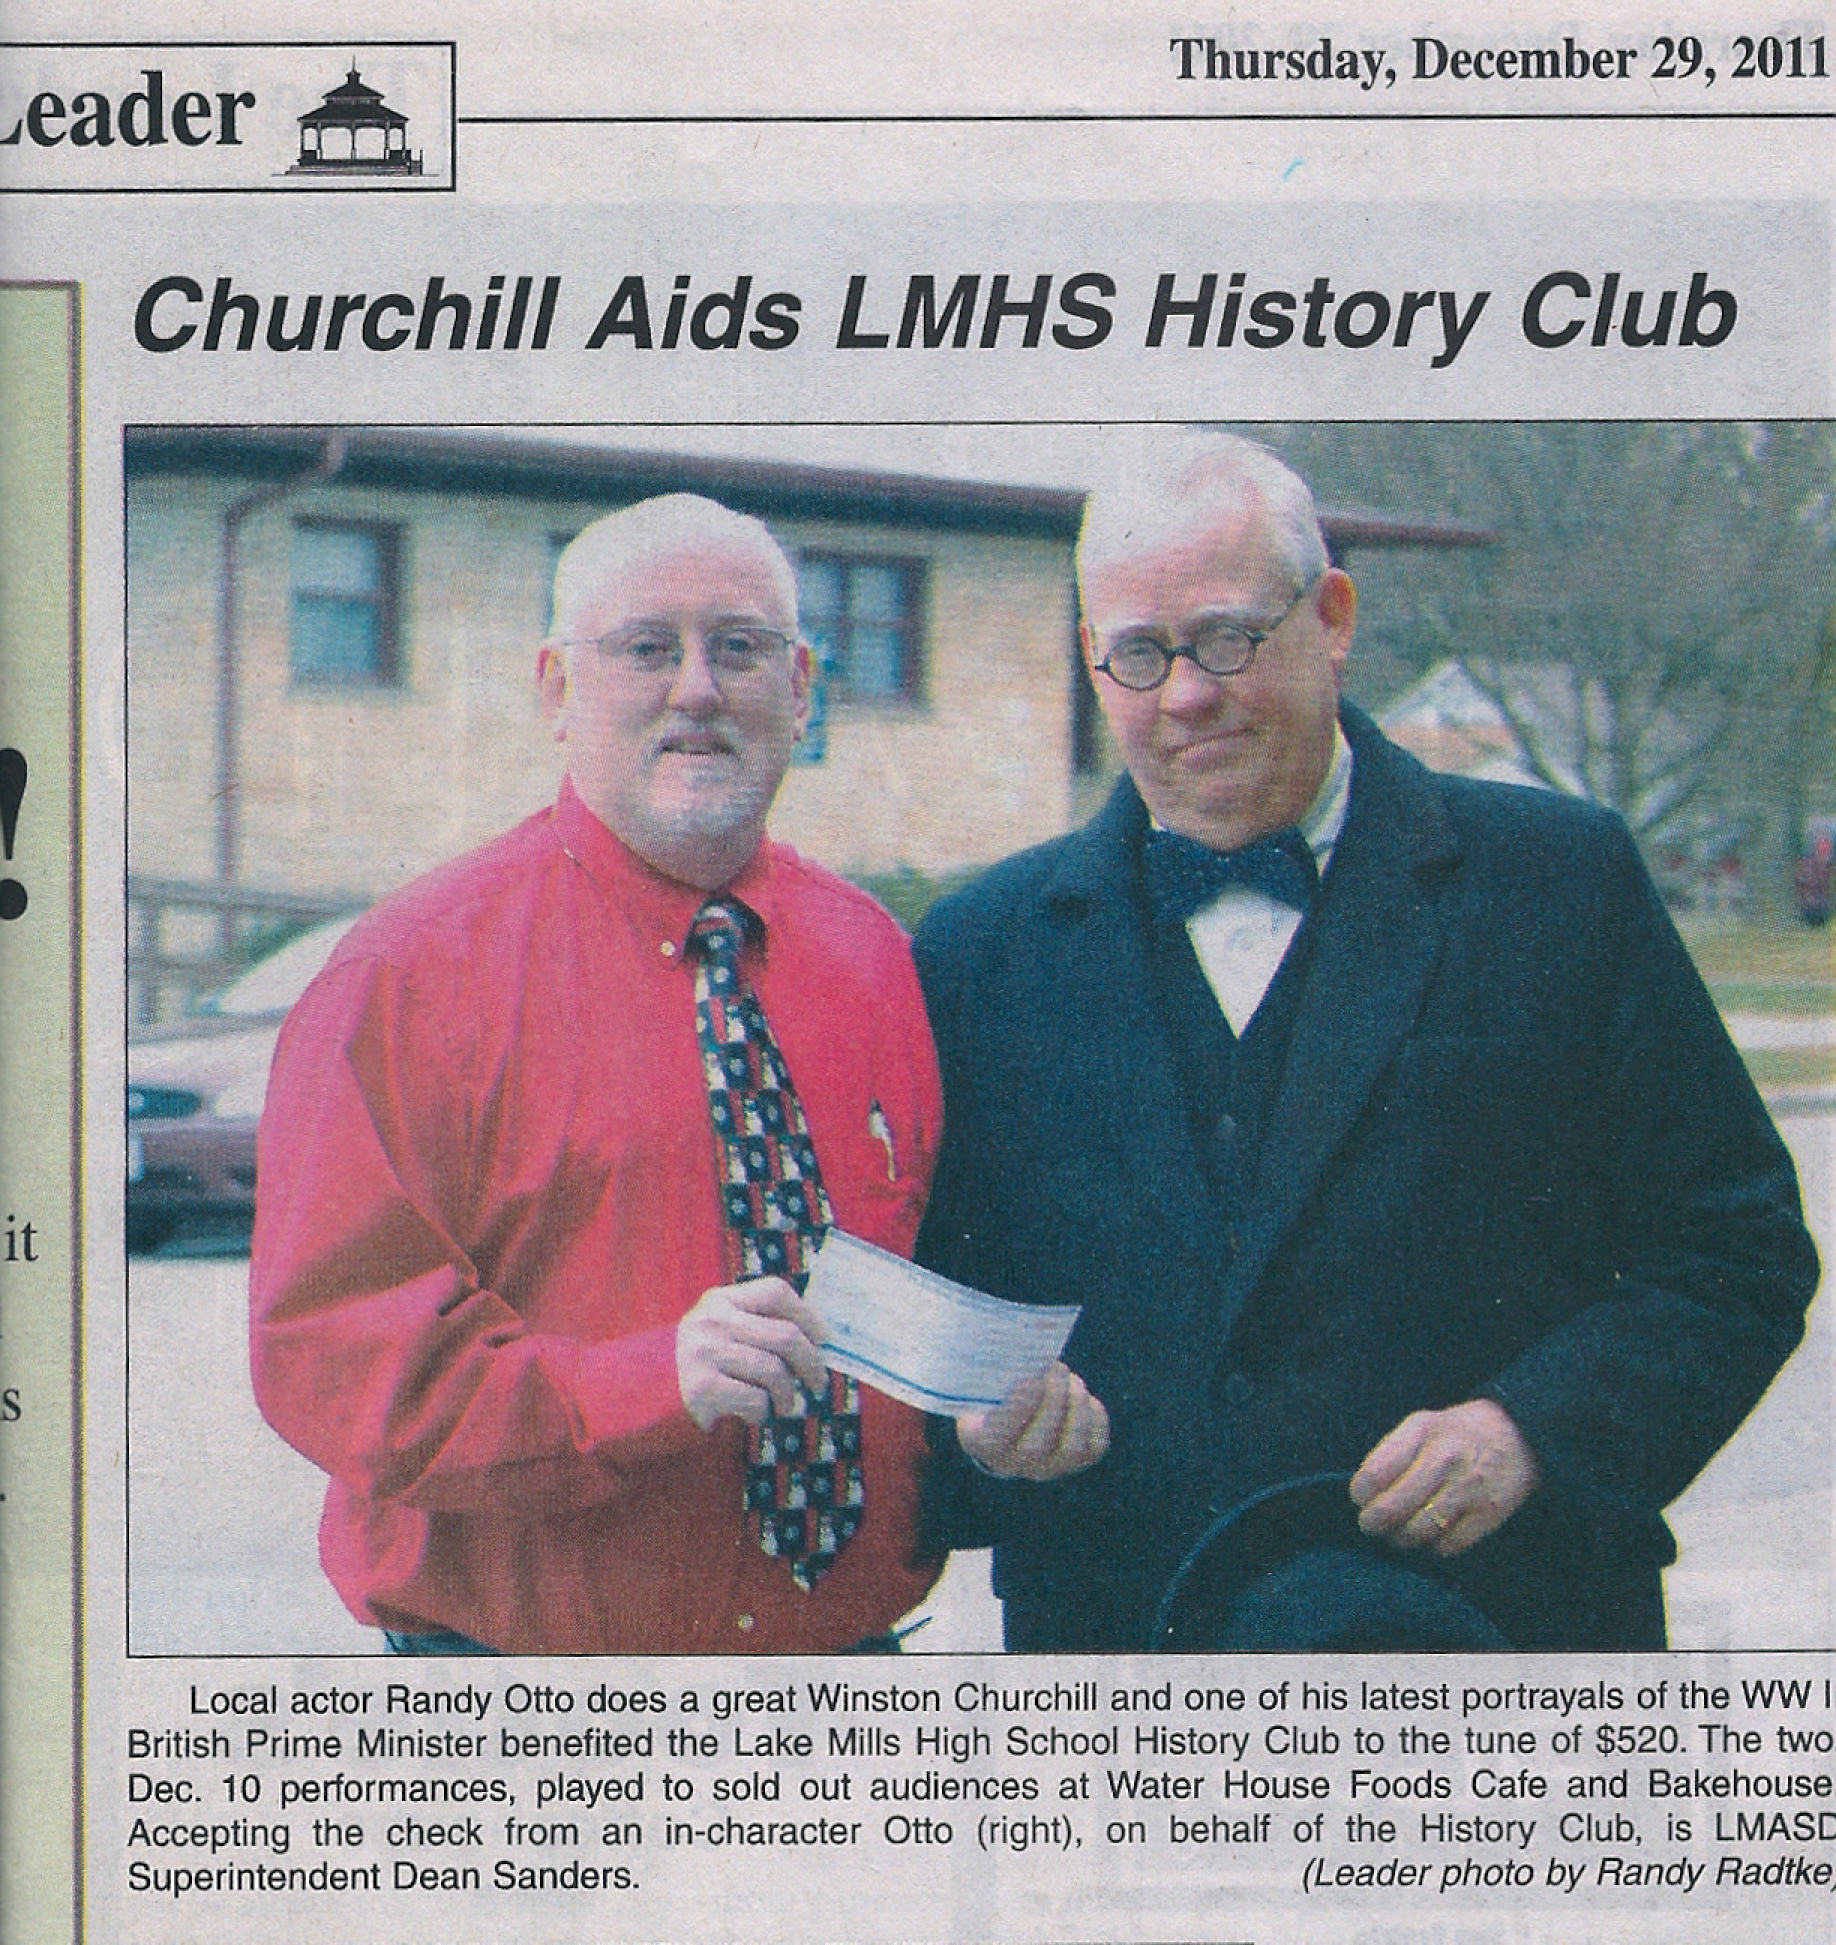 Churchill Aids LMHS History Club